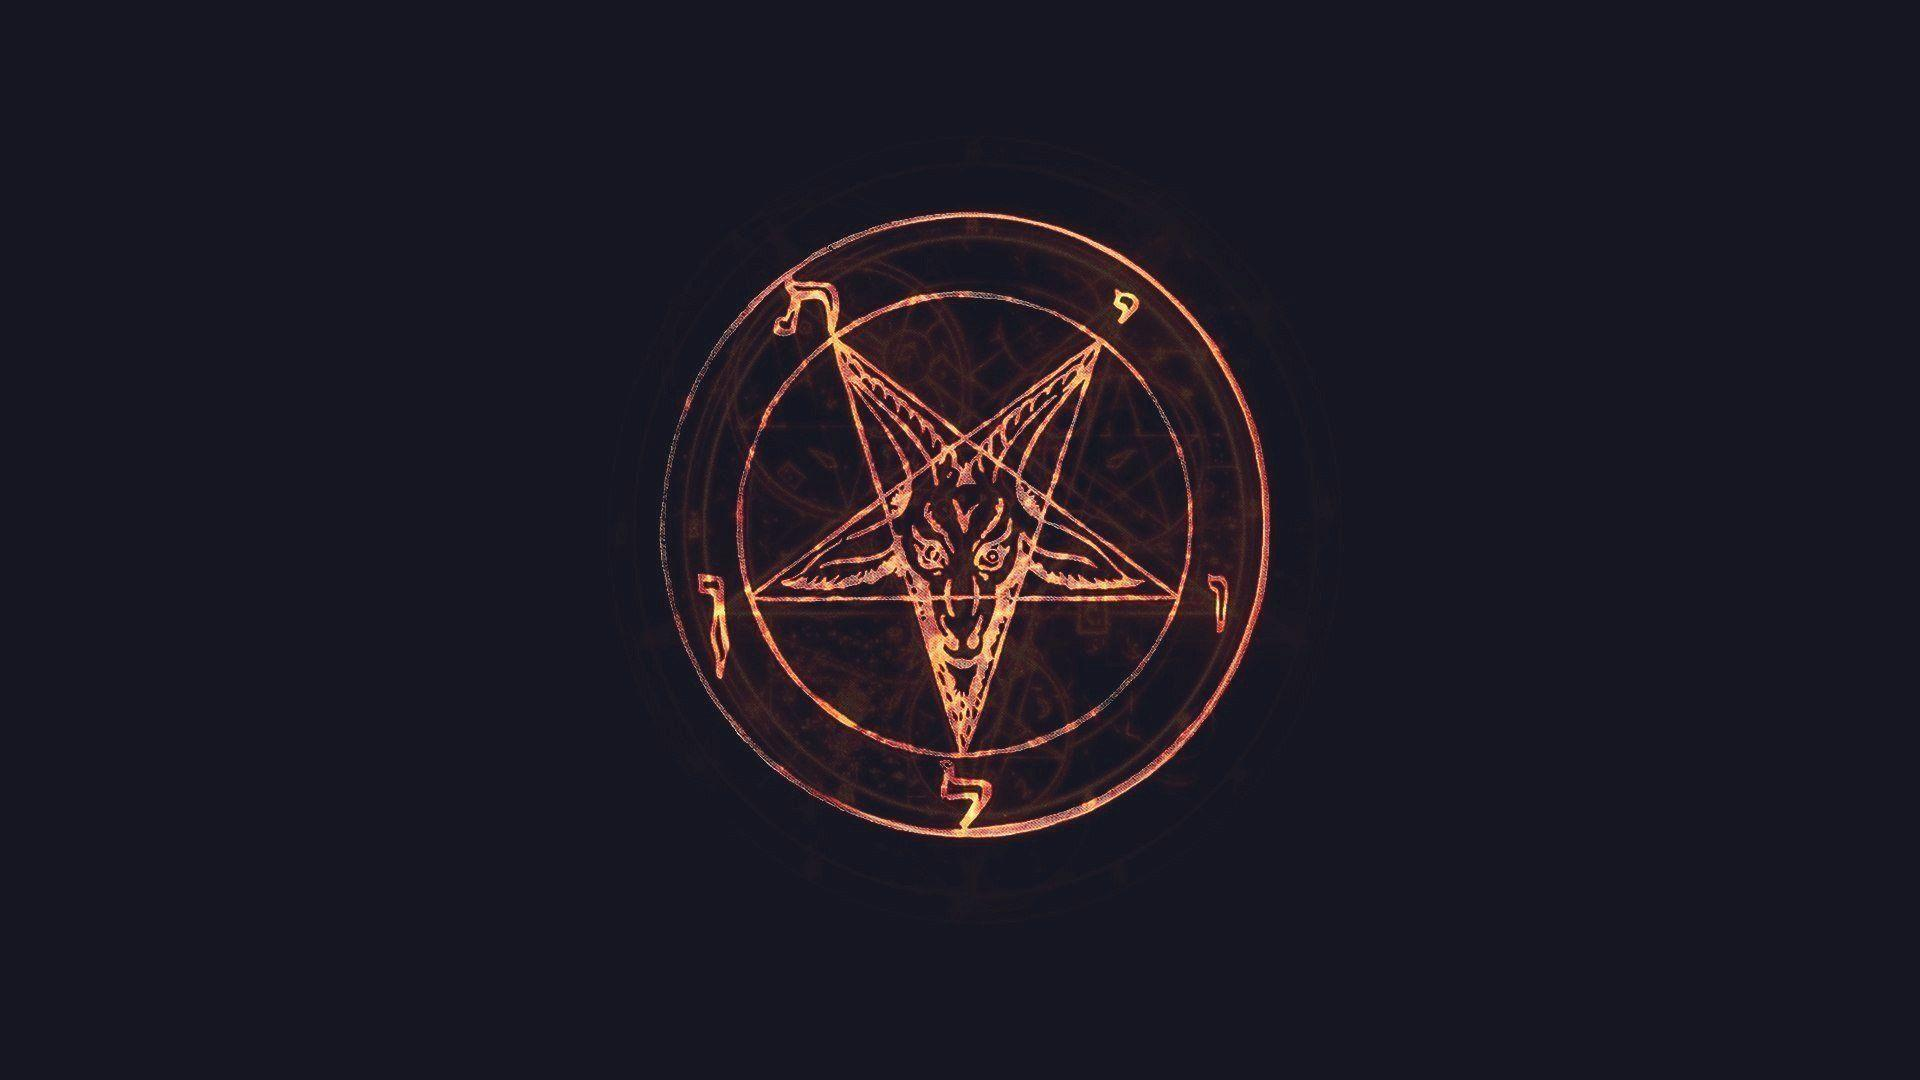 pentagram lucifer satan glow HD wallpaper